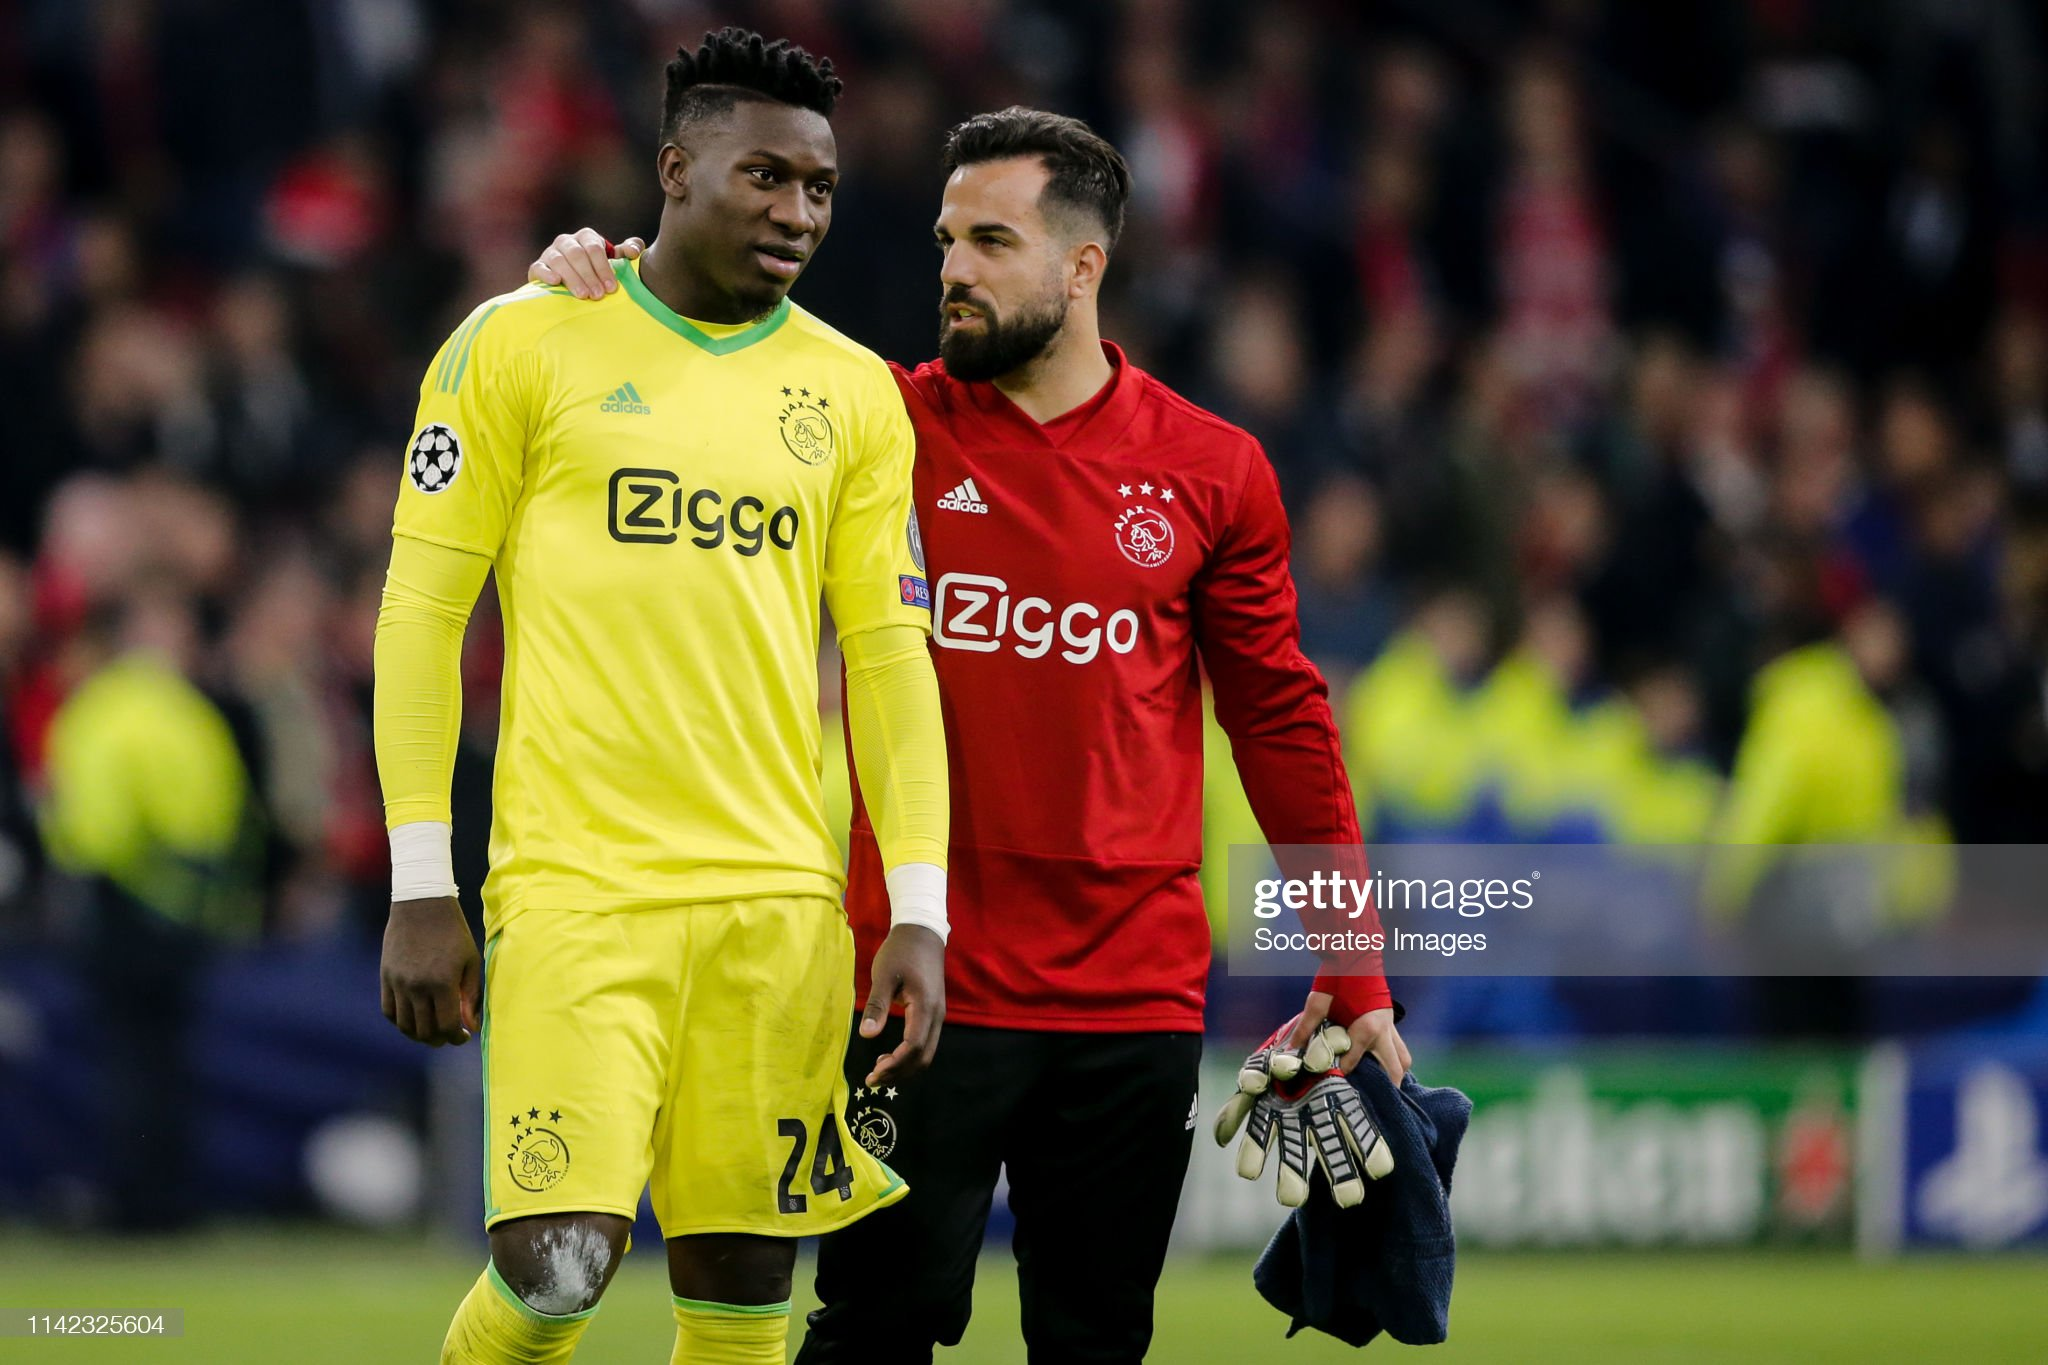 ¿Cuánto mide Kostas Lamprou? - Real height Andre-onana-of-ajax-kostas-lamprou-of-ajax-during-the-uefa-champions-picture-id1142325604?s=2048x2048